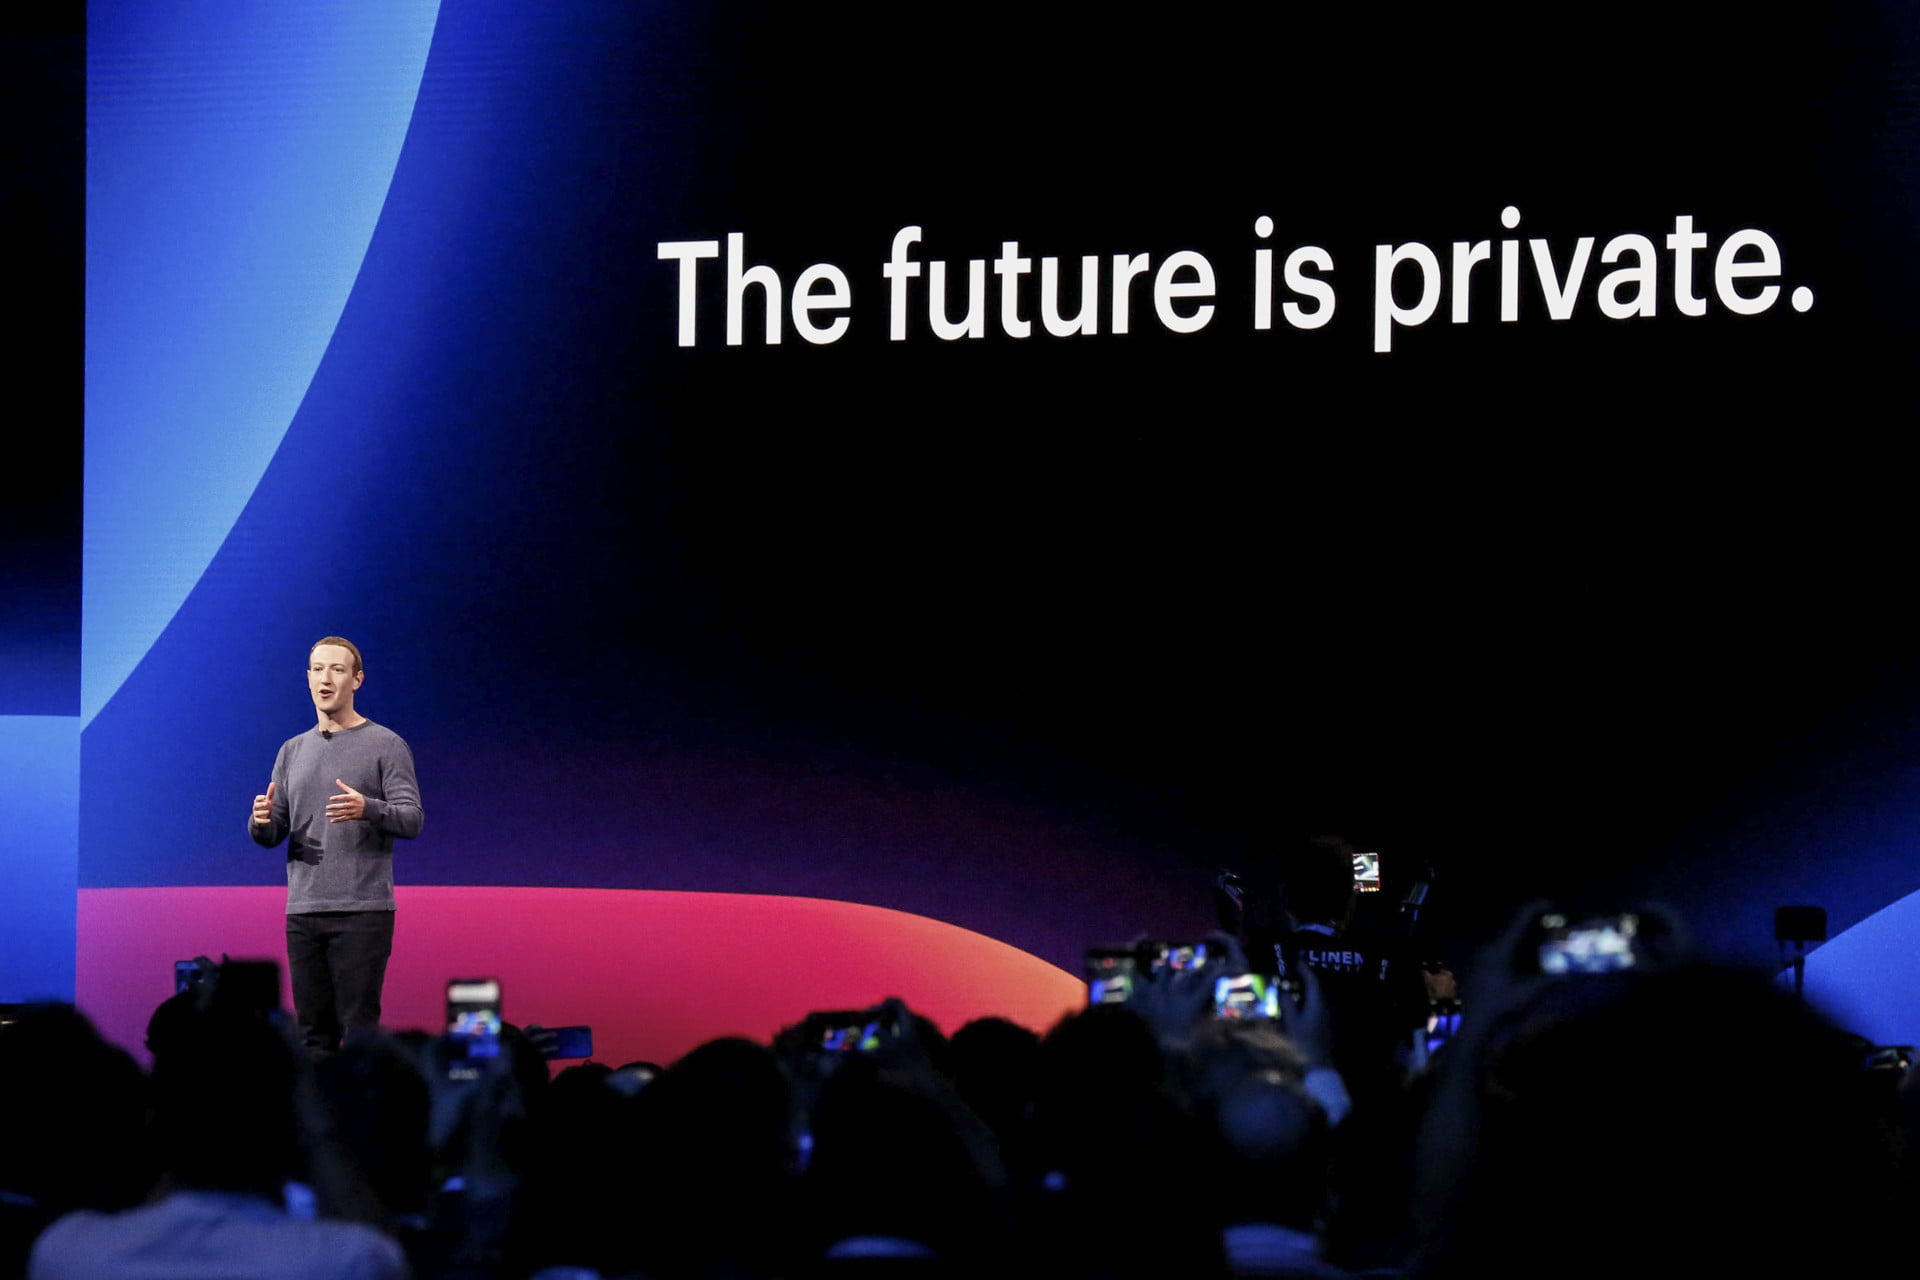 Facebooks First President On Facebook >> Facebook Says The Future Is Private But What Does That Mean